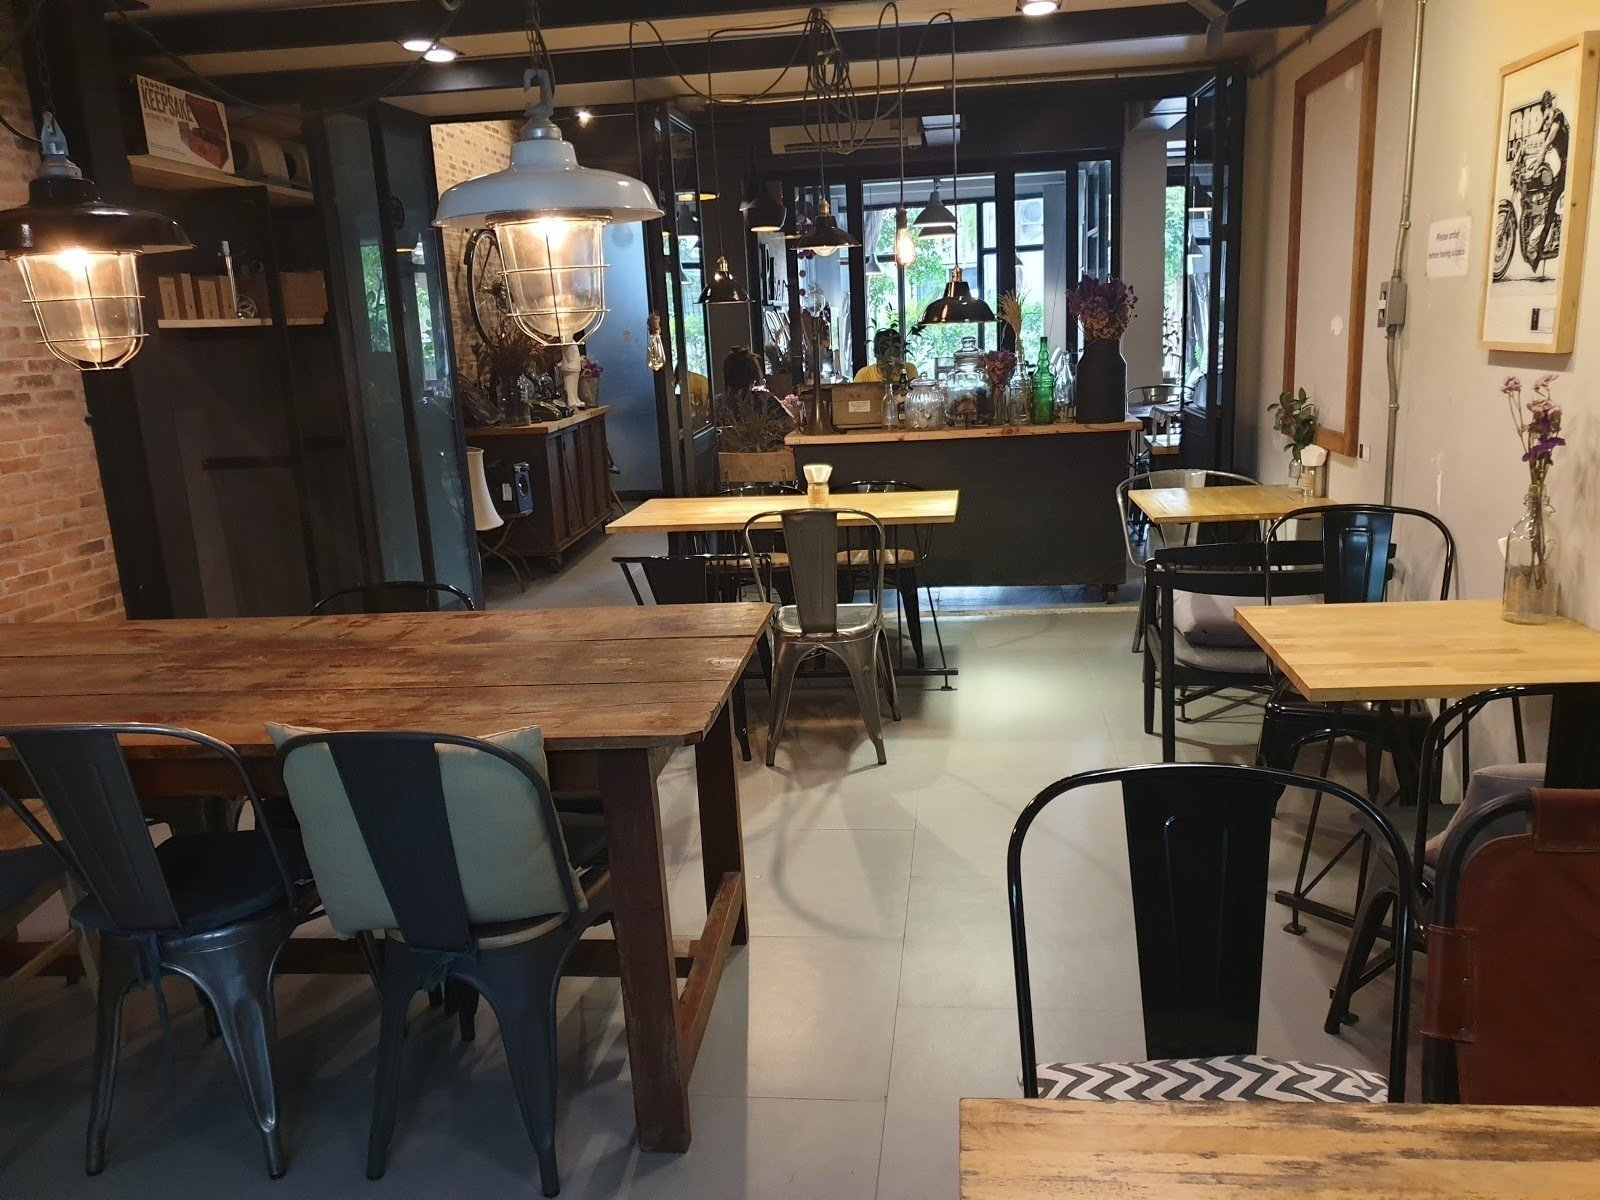 Ombra Caffe: A Work-Friendly Place in Chiang Mai